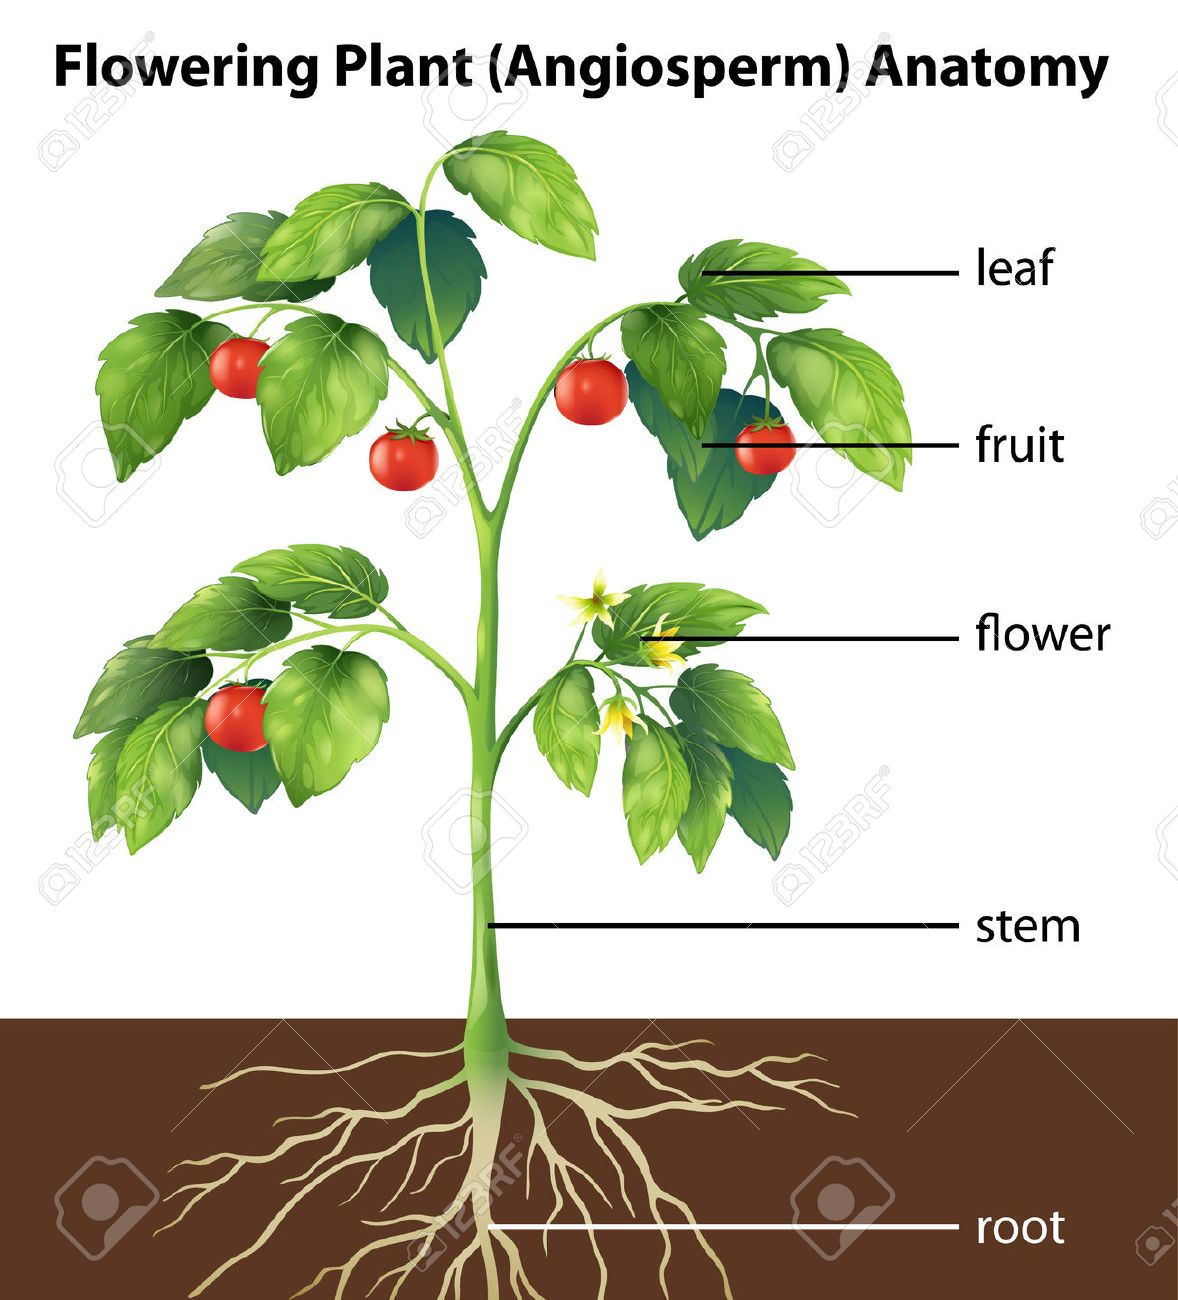 Fc74615538395ca0226f4b55d829428ctomato Plant Illustration Parts Of